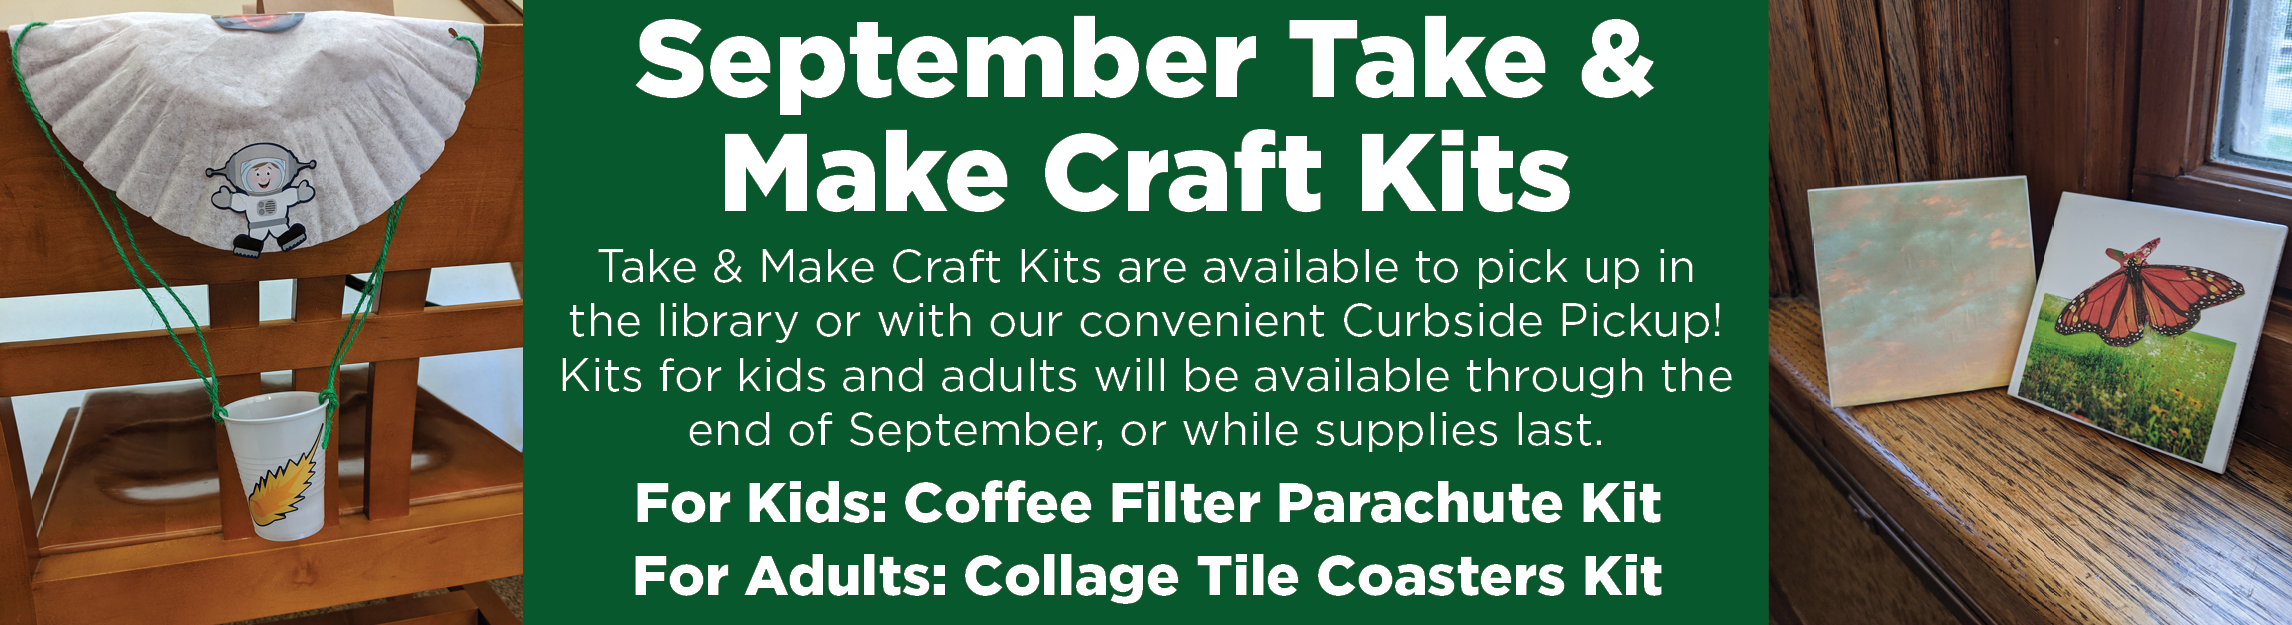 September Take & Make Craft Kits